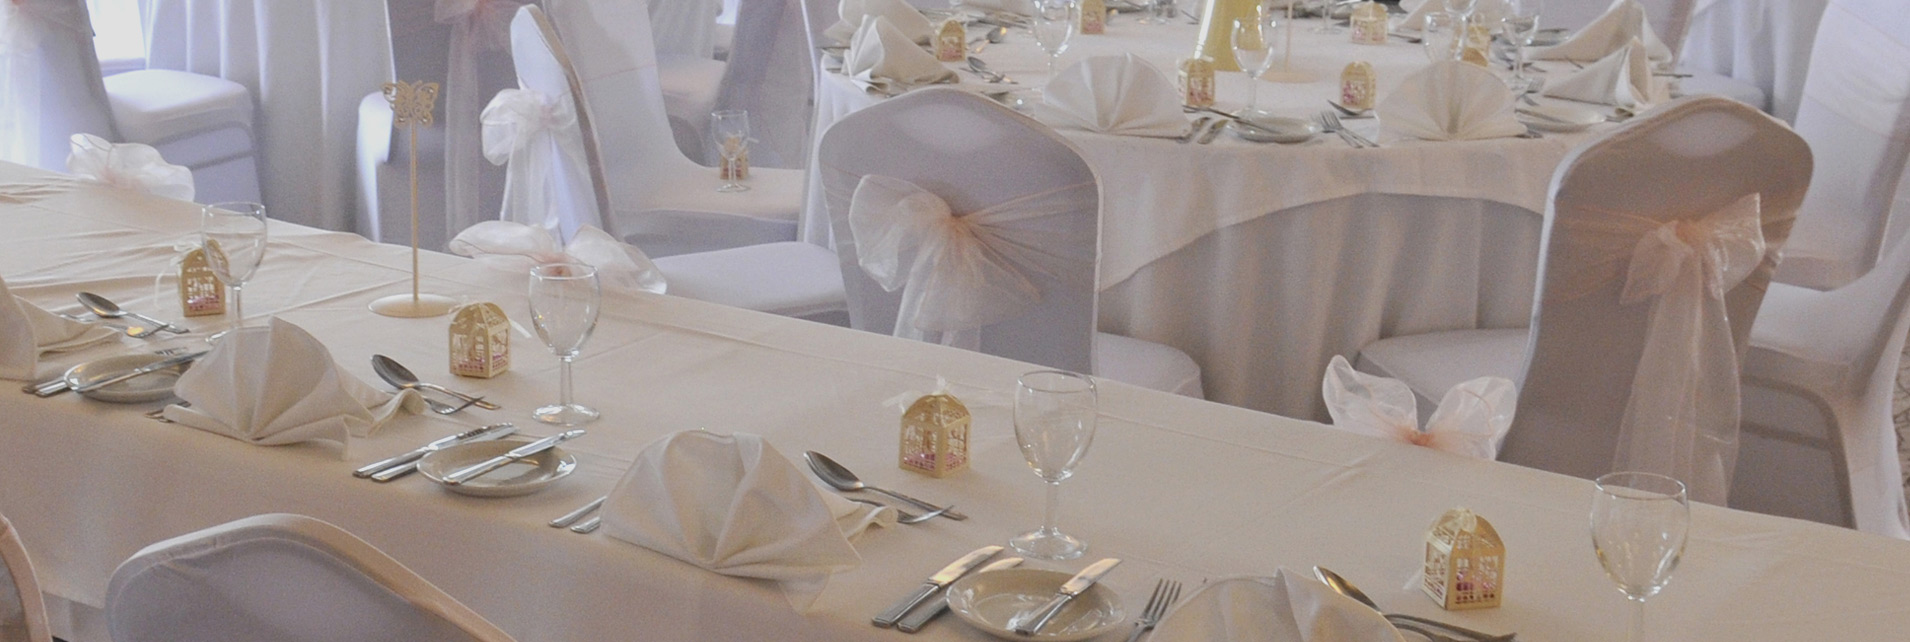 Weddings at Chalkwell Park Rooms